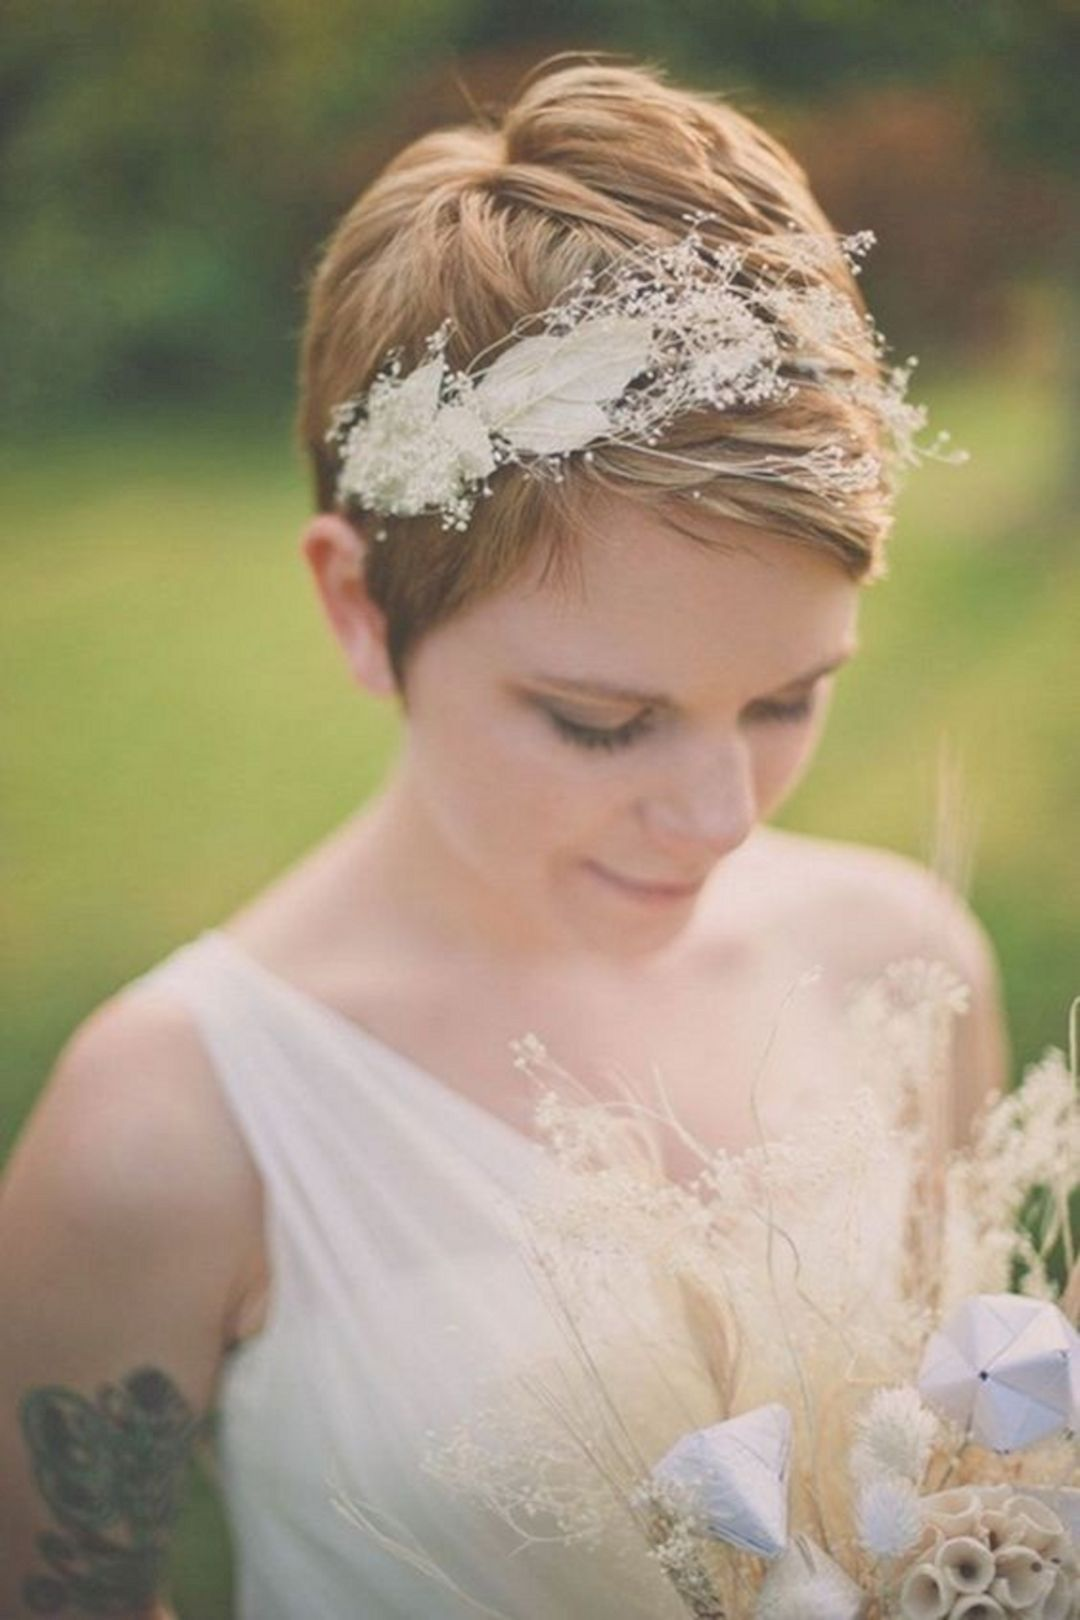 Wedding Hairstyles for Short Hair | Stay at Home Mum.com.au